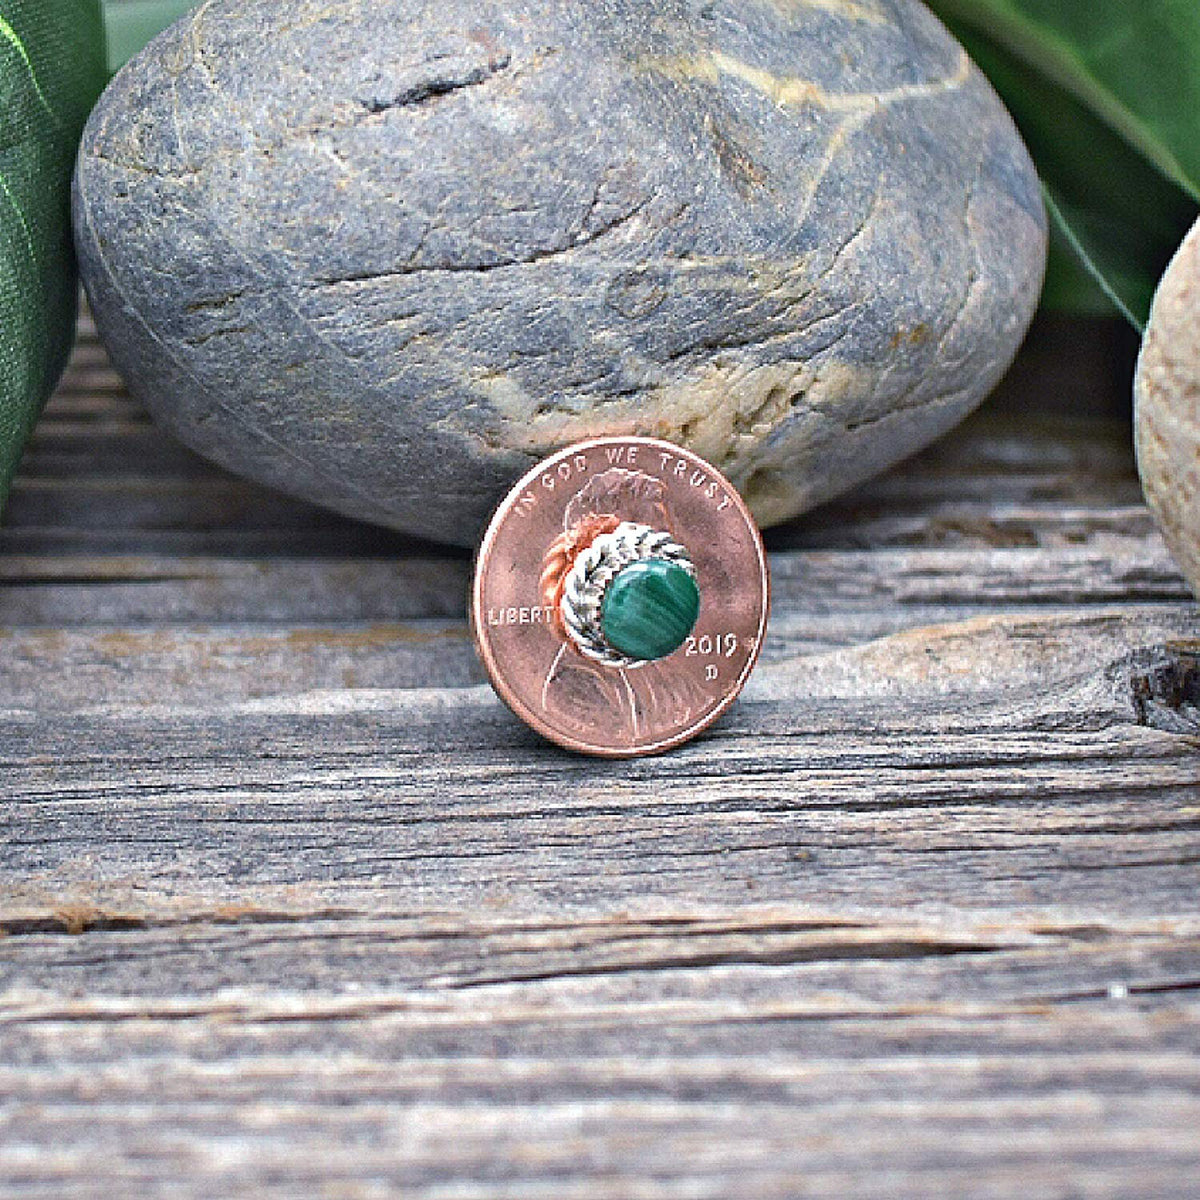 8mm Genuine Malachite Stud Earrings in 925 Sterling Silver, Round Style, Native American Handmade in the USA, Nickle Free, Dark Green